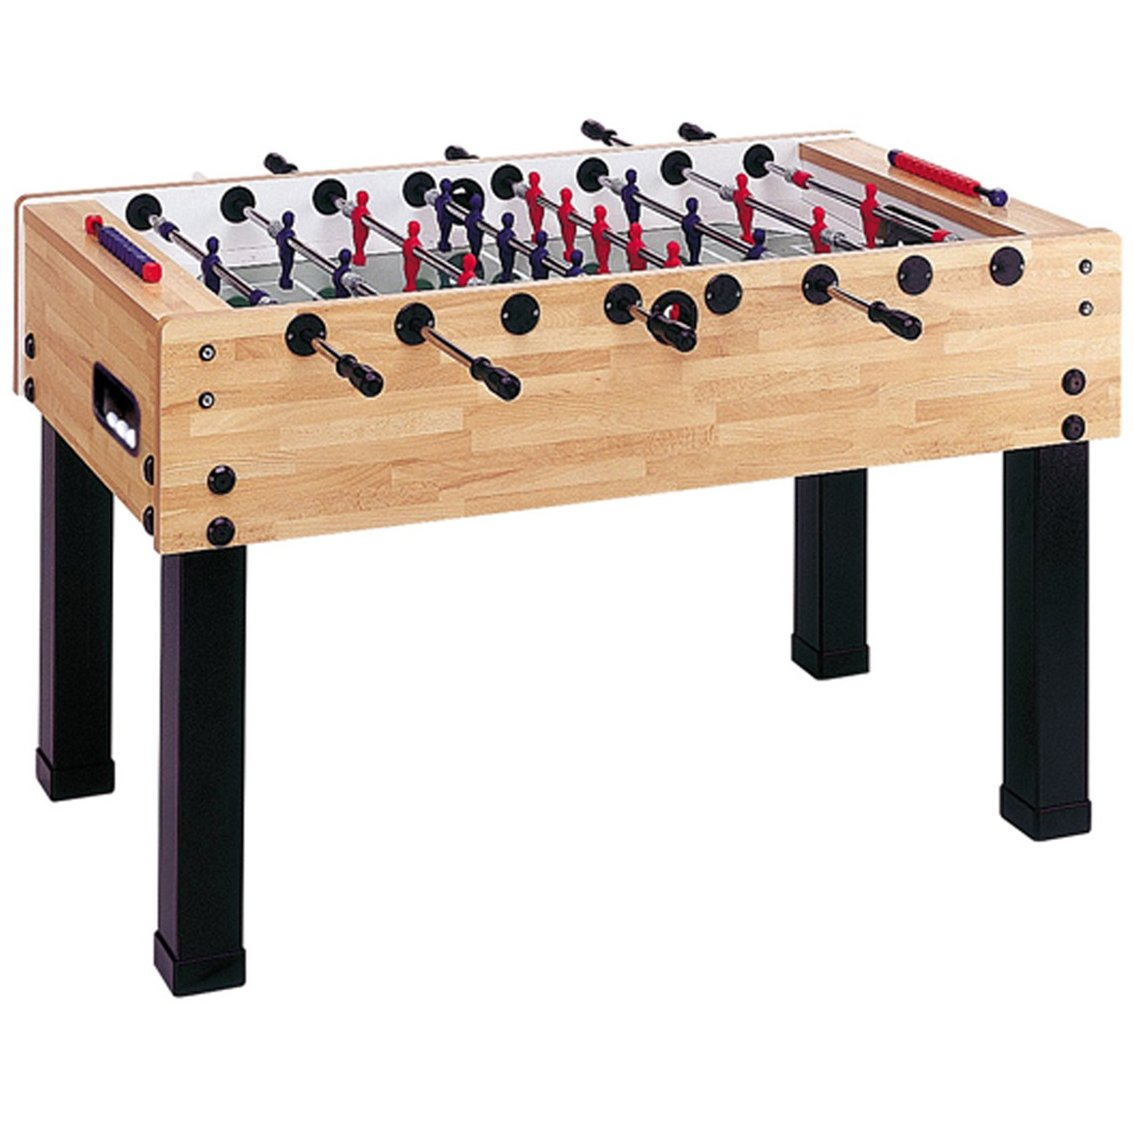 Best Foosball Table Under $1000 U2013 $1200